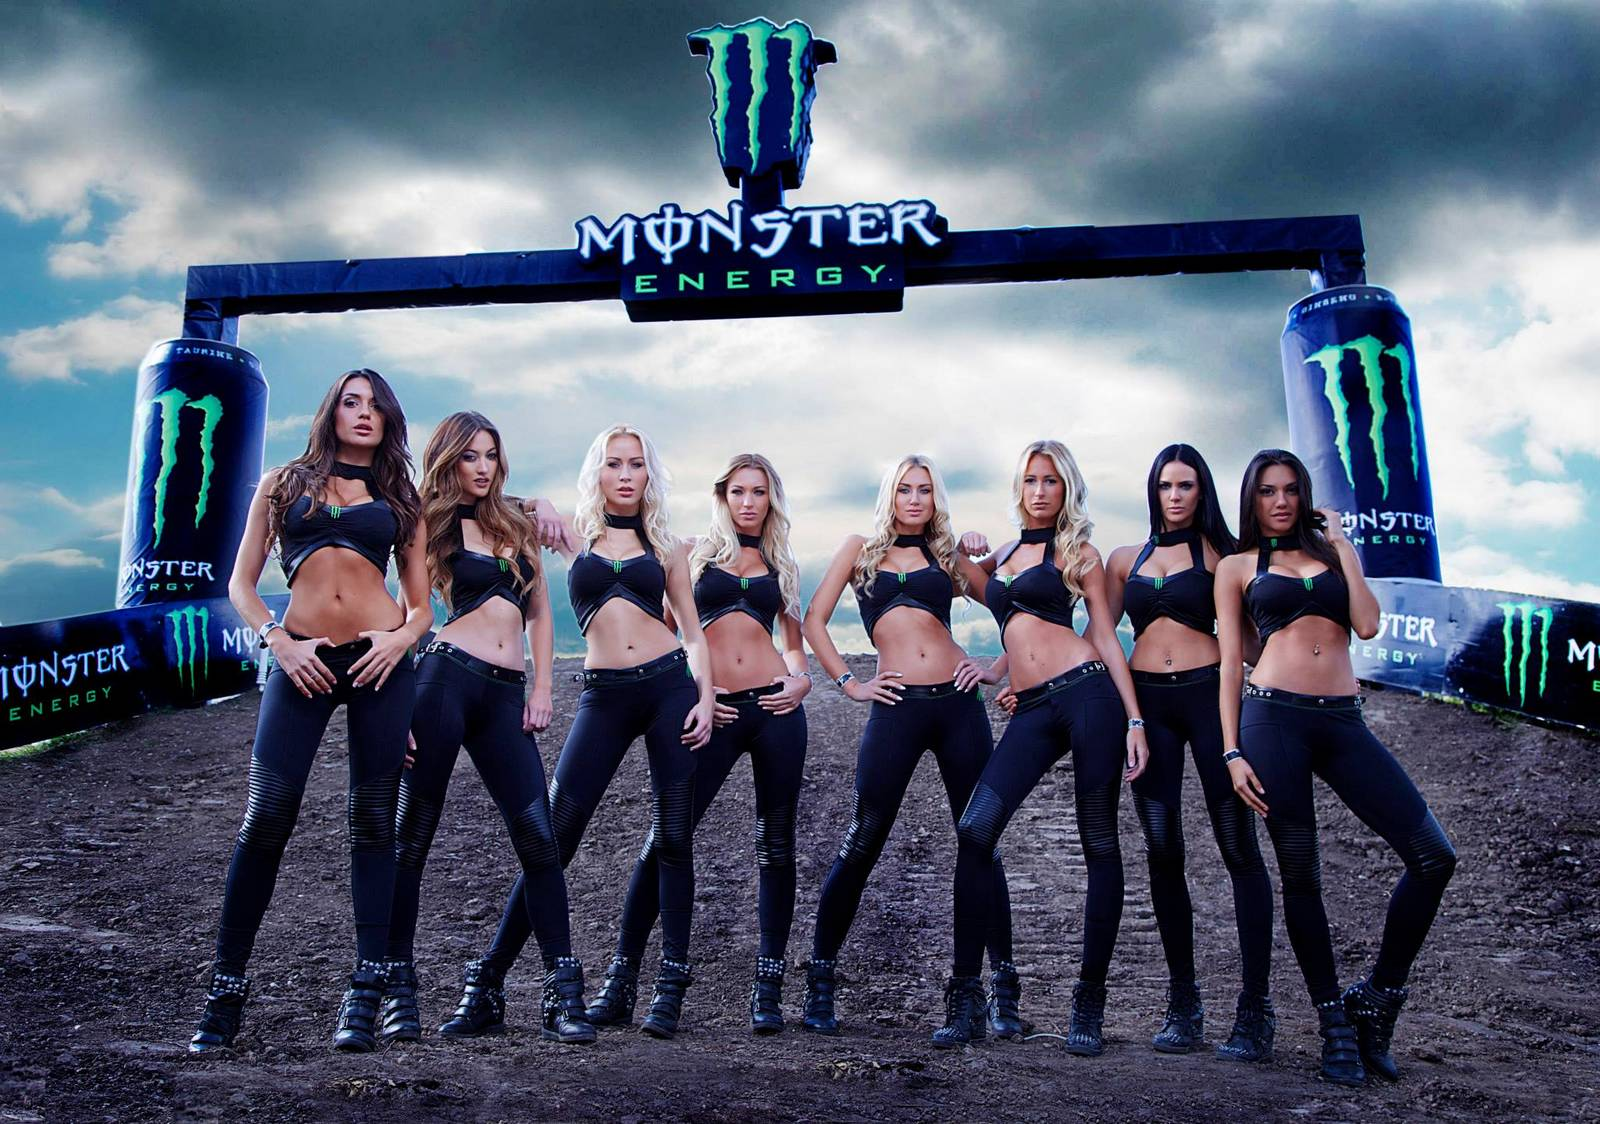 Monsters energy girls sex pics